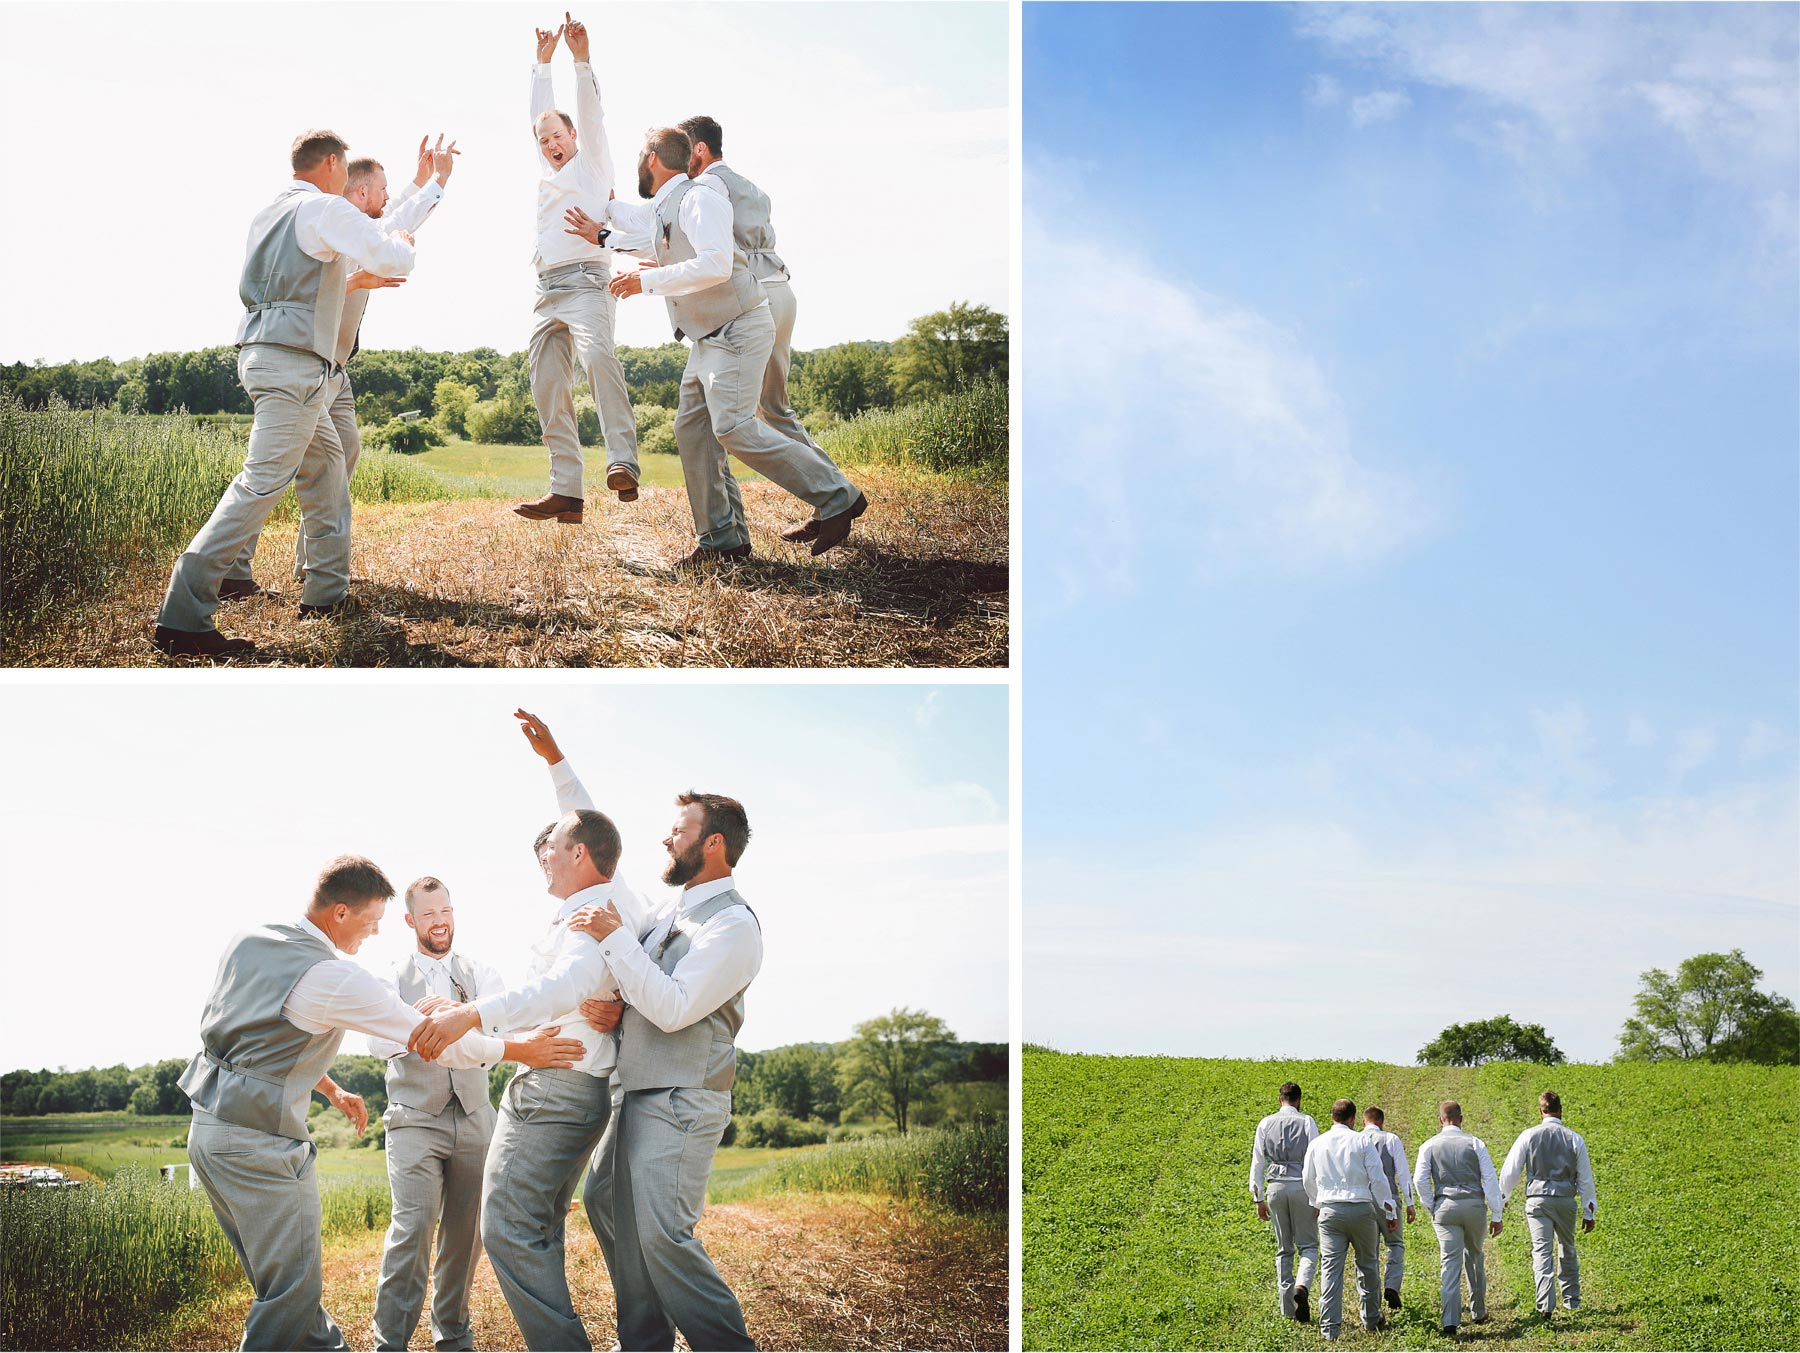 03-South-Haven-Minnesota-Wedding-Photographer-by-Andrew-Vick-Photography-Summer-Tomala-Farm-Field-Groomsmen-Groom-Celebration-Vintage-Renee-and-Bobb.jpg